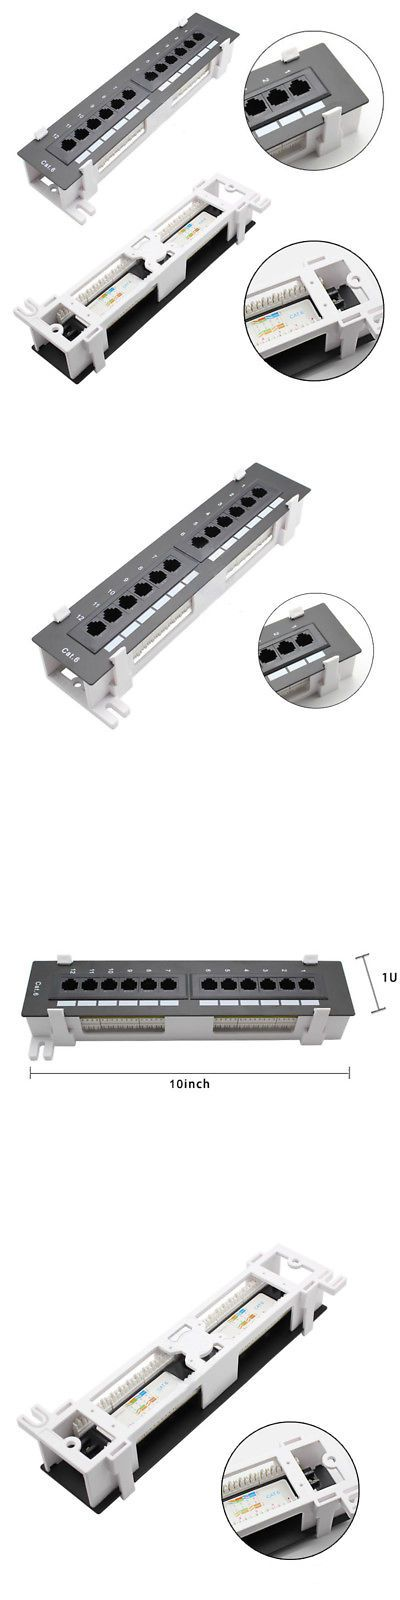 Patch Panels 44992 Useful 12port Cat5 Cat6 Rj45 Network Patch Panel Wall Mount Rack Surface Bracket Buy It Now Only 12 79 On Wall Mount Rack Wall Paneling